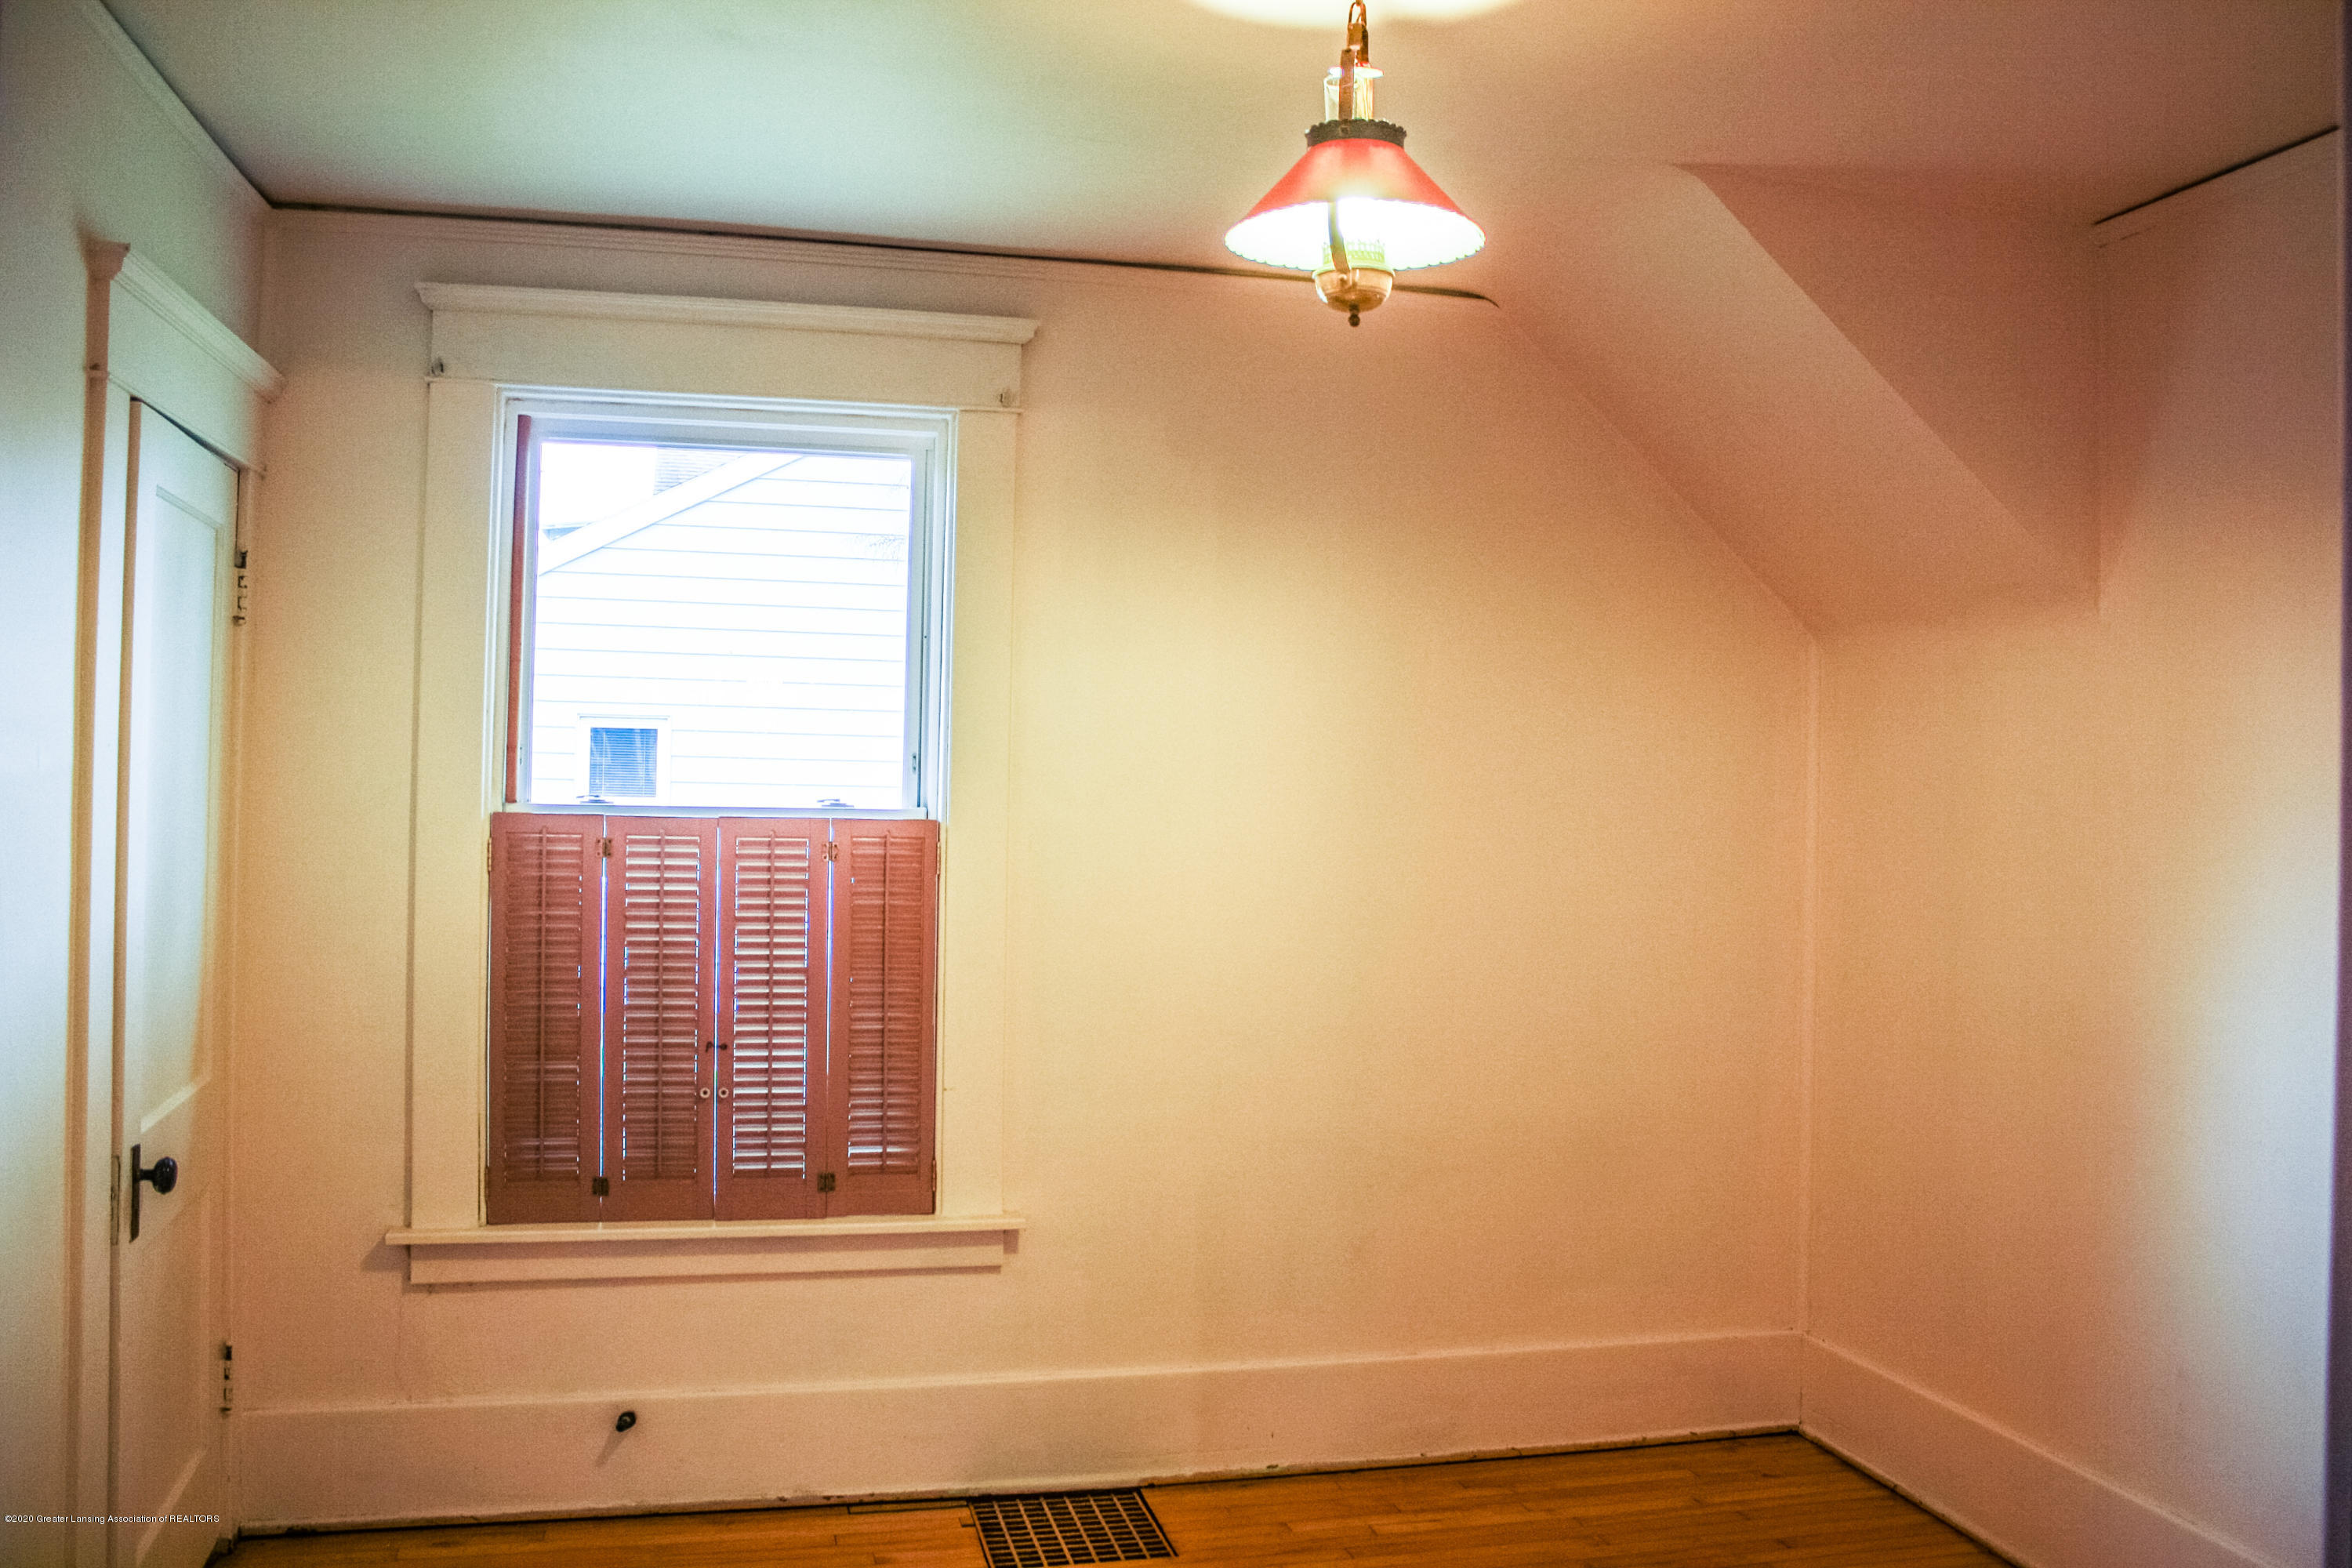 313 S Clemens Ave - Bedroom 1 - 18